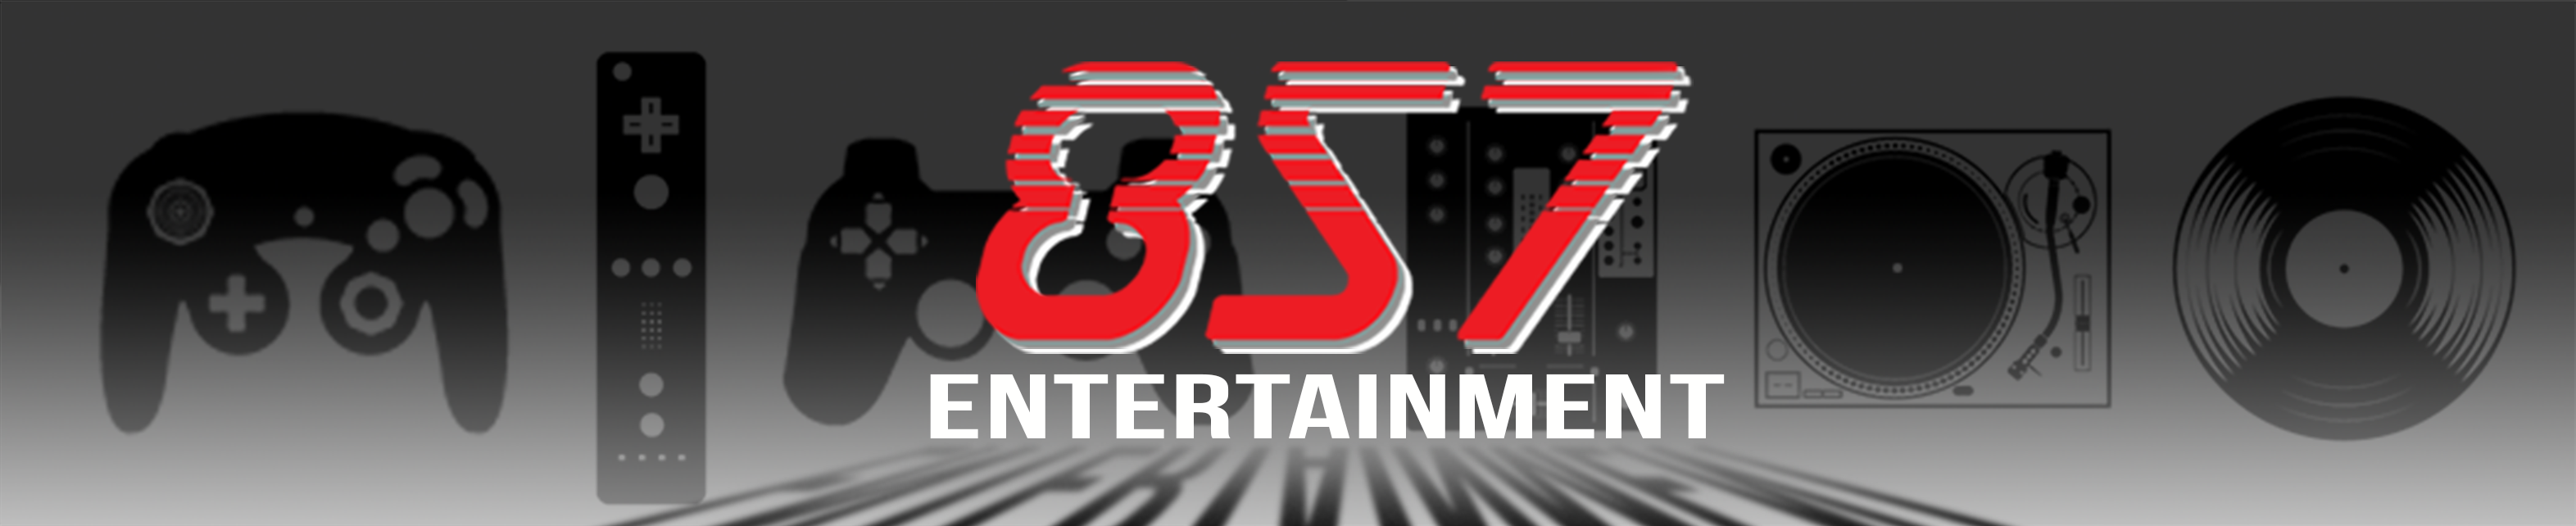 857 Entertainment  Innovative Hip-hop, Gaming, Podcasts, Vlogs and more